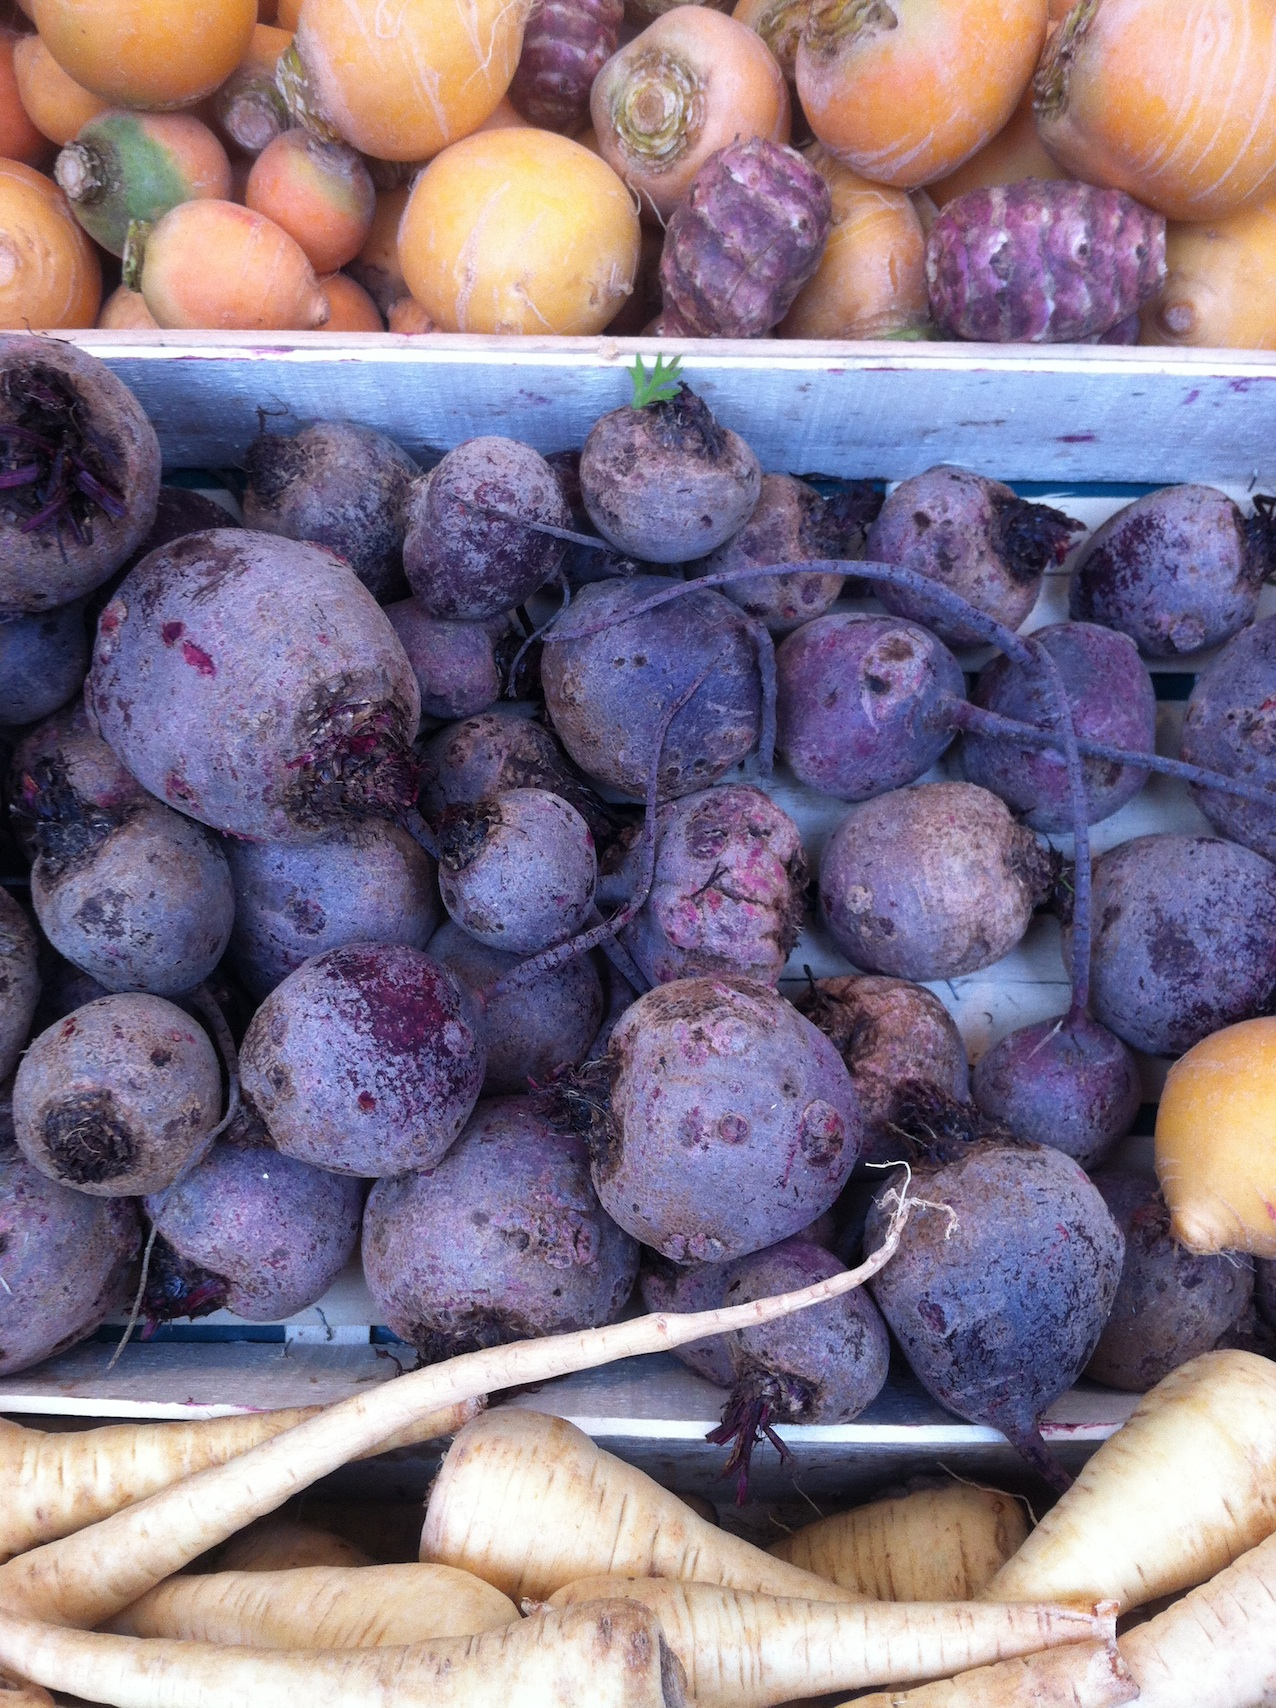 Raw beets at Marché Monge